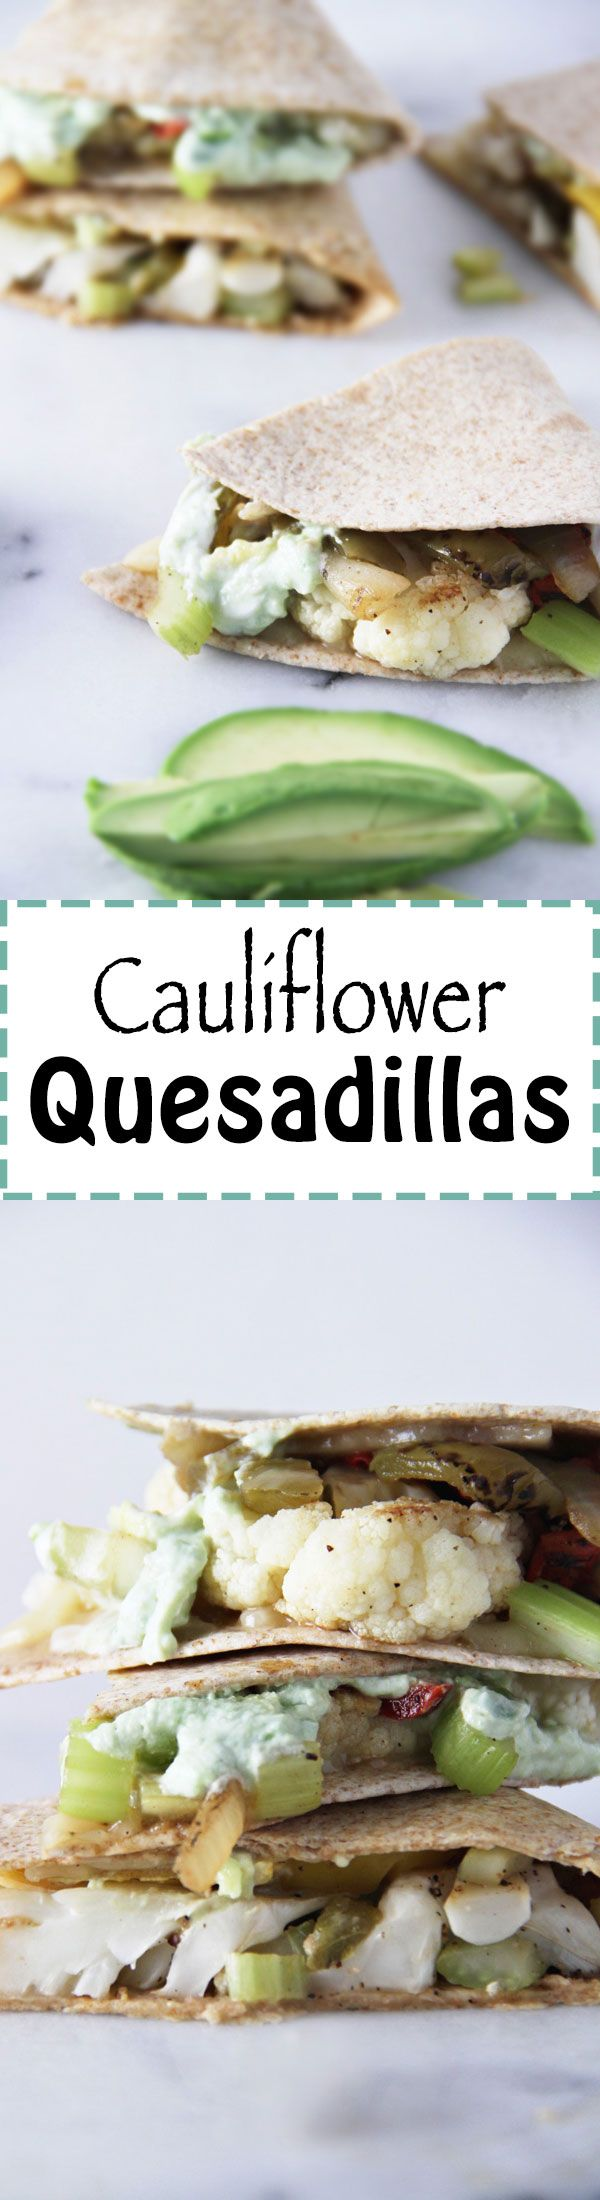 Cauliflower Quesadillas by JarOfLemons.com!